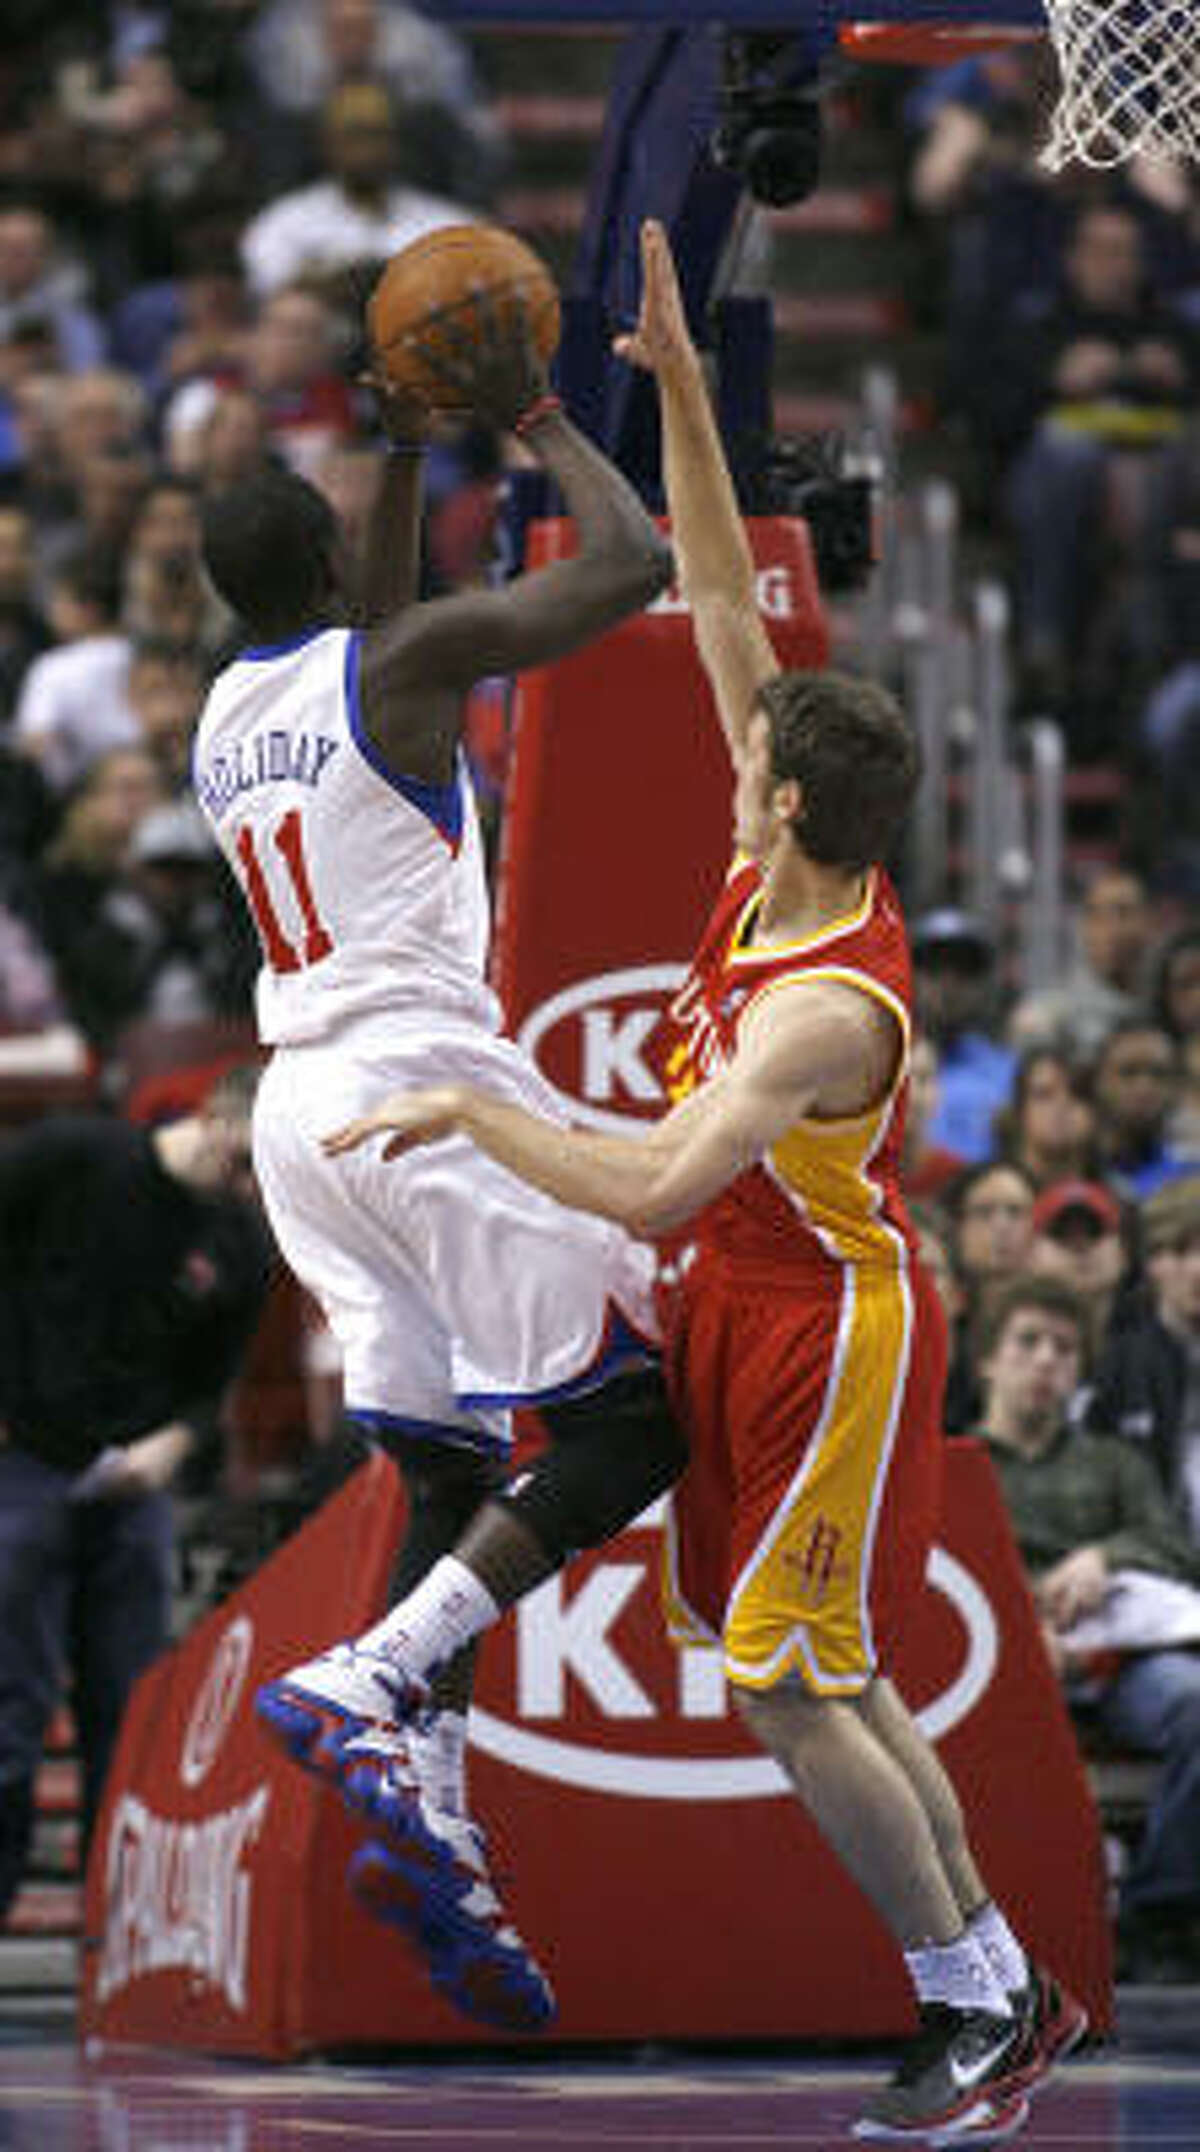 Rockets' Goran Dragic, right, defends as 76ers' Jrue Holiday(11) goes up for a score.